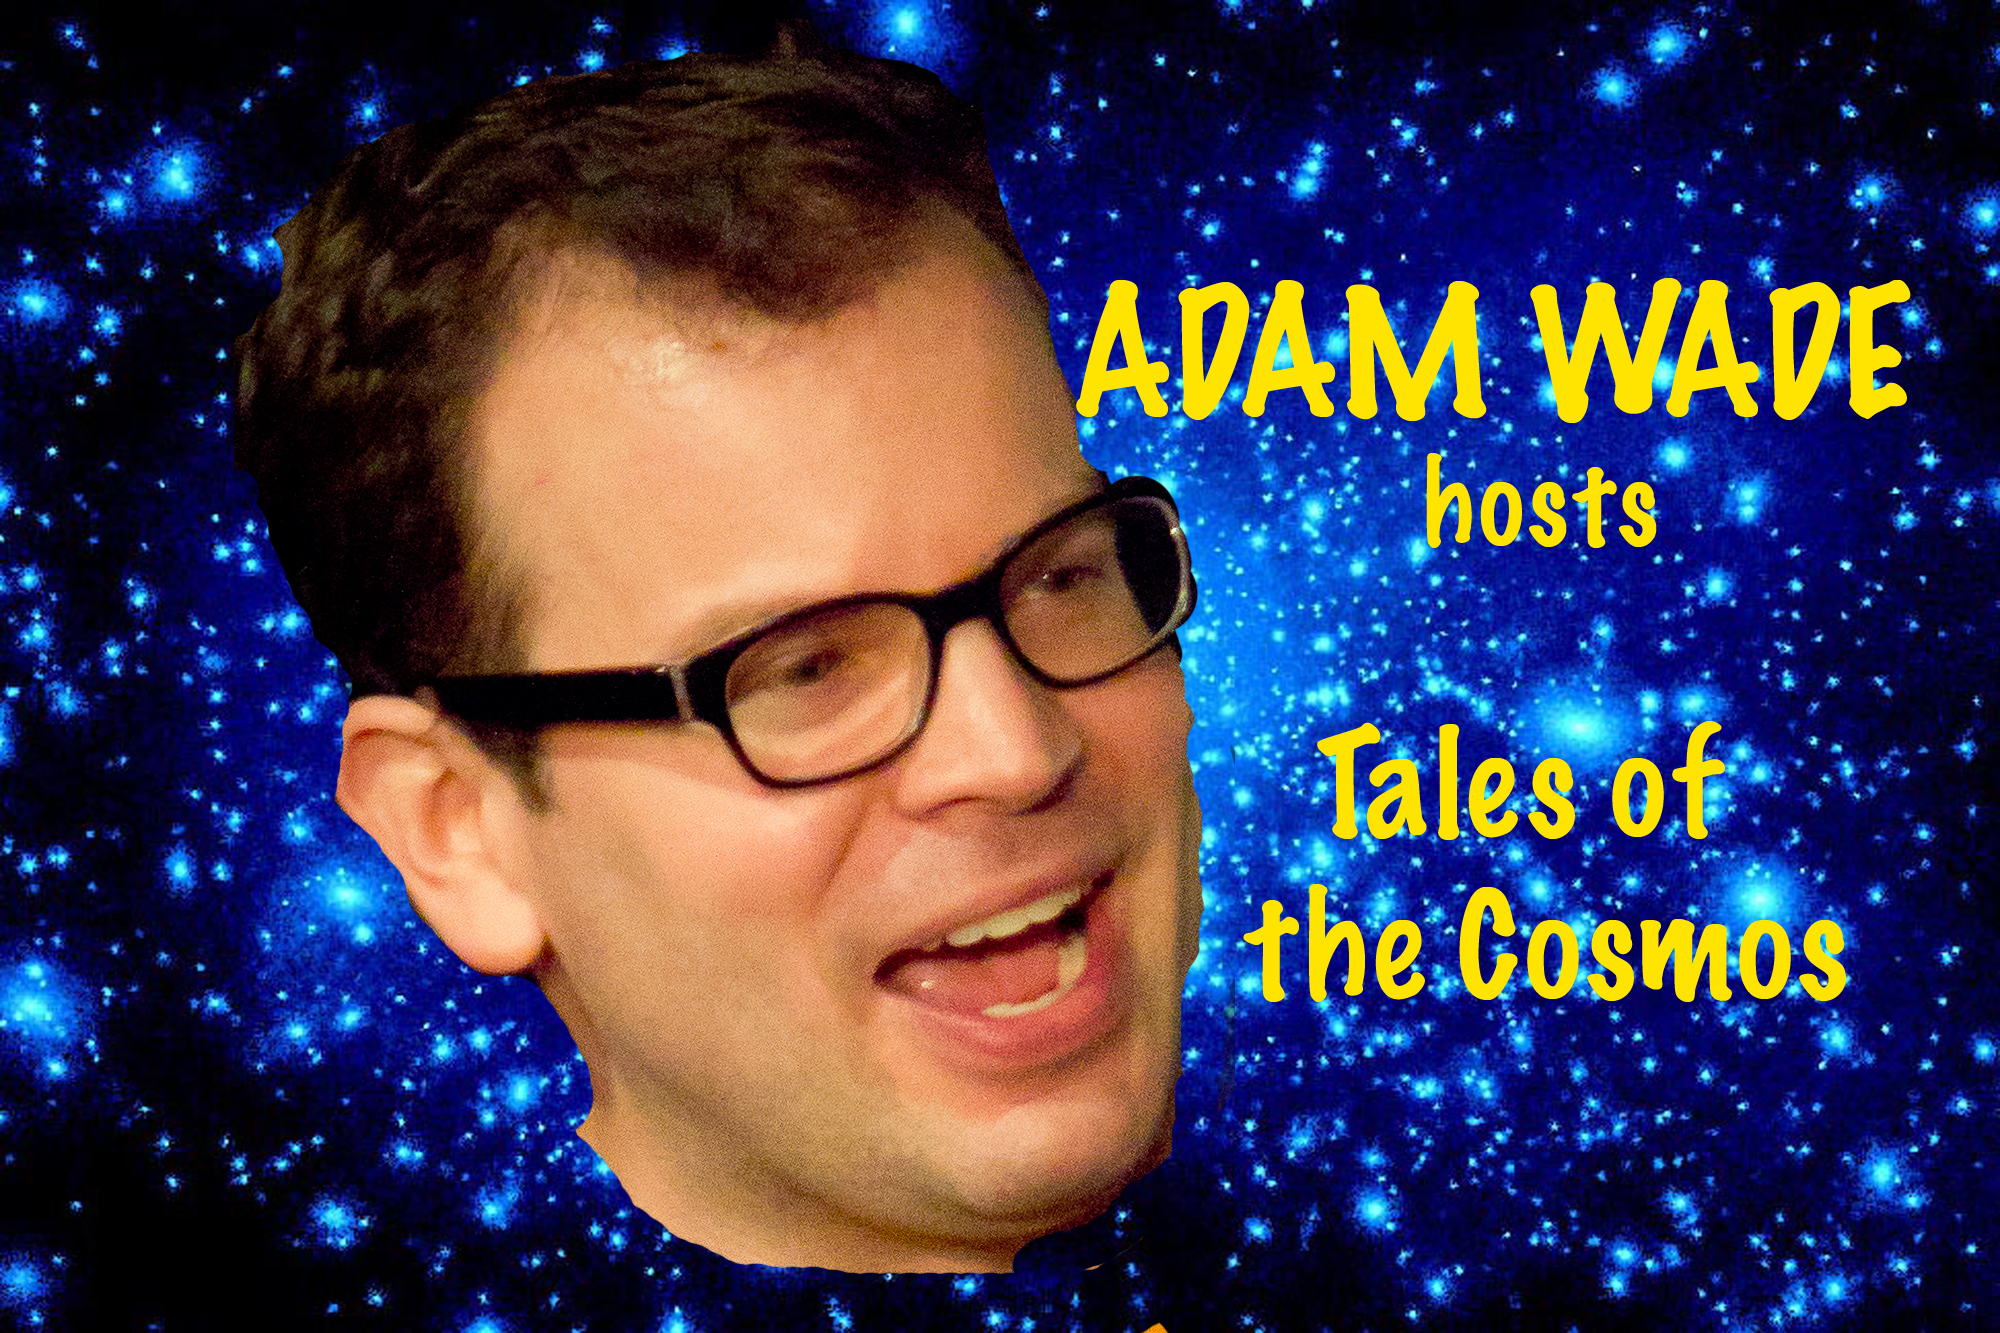 Adam Wade's Tales of the Cosmos